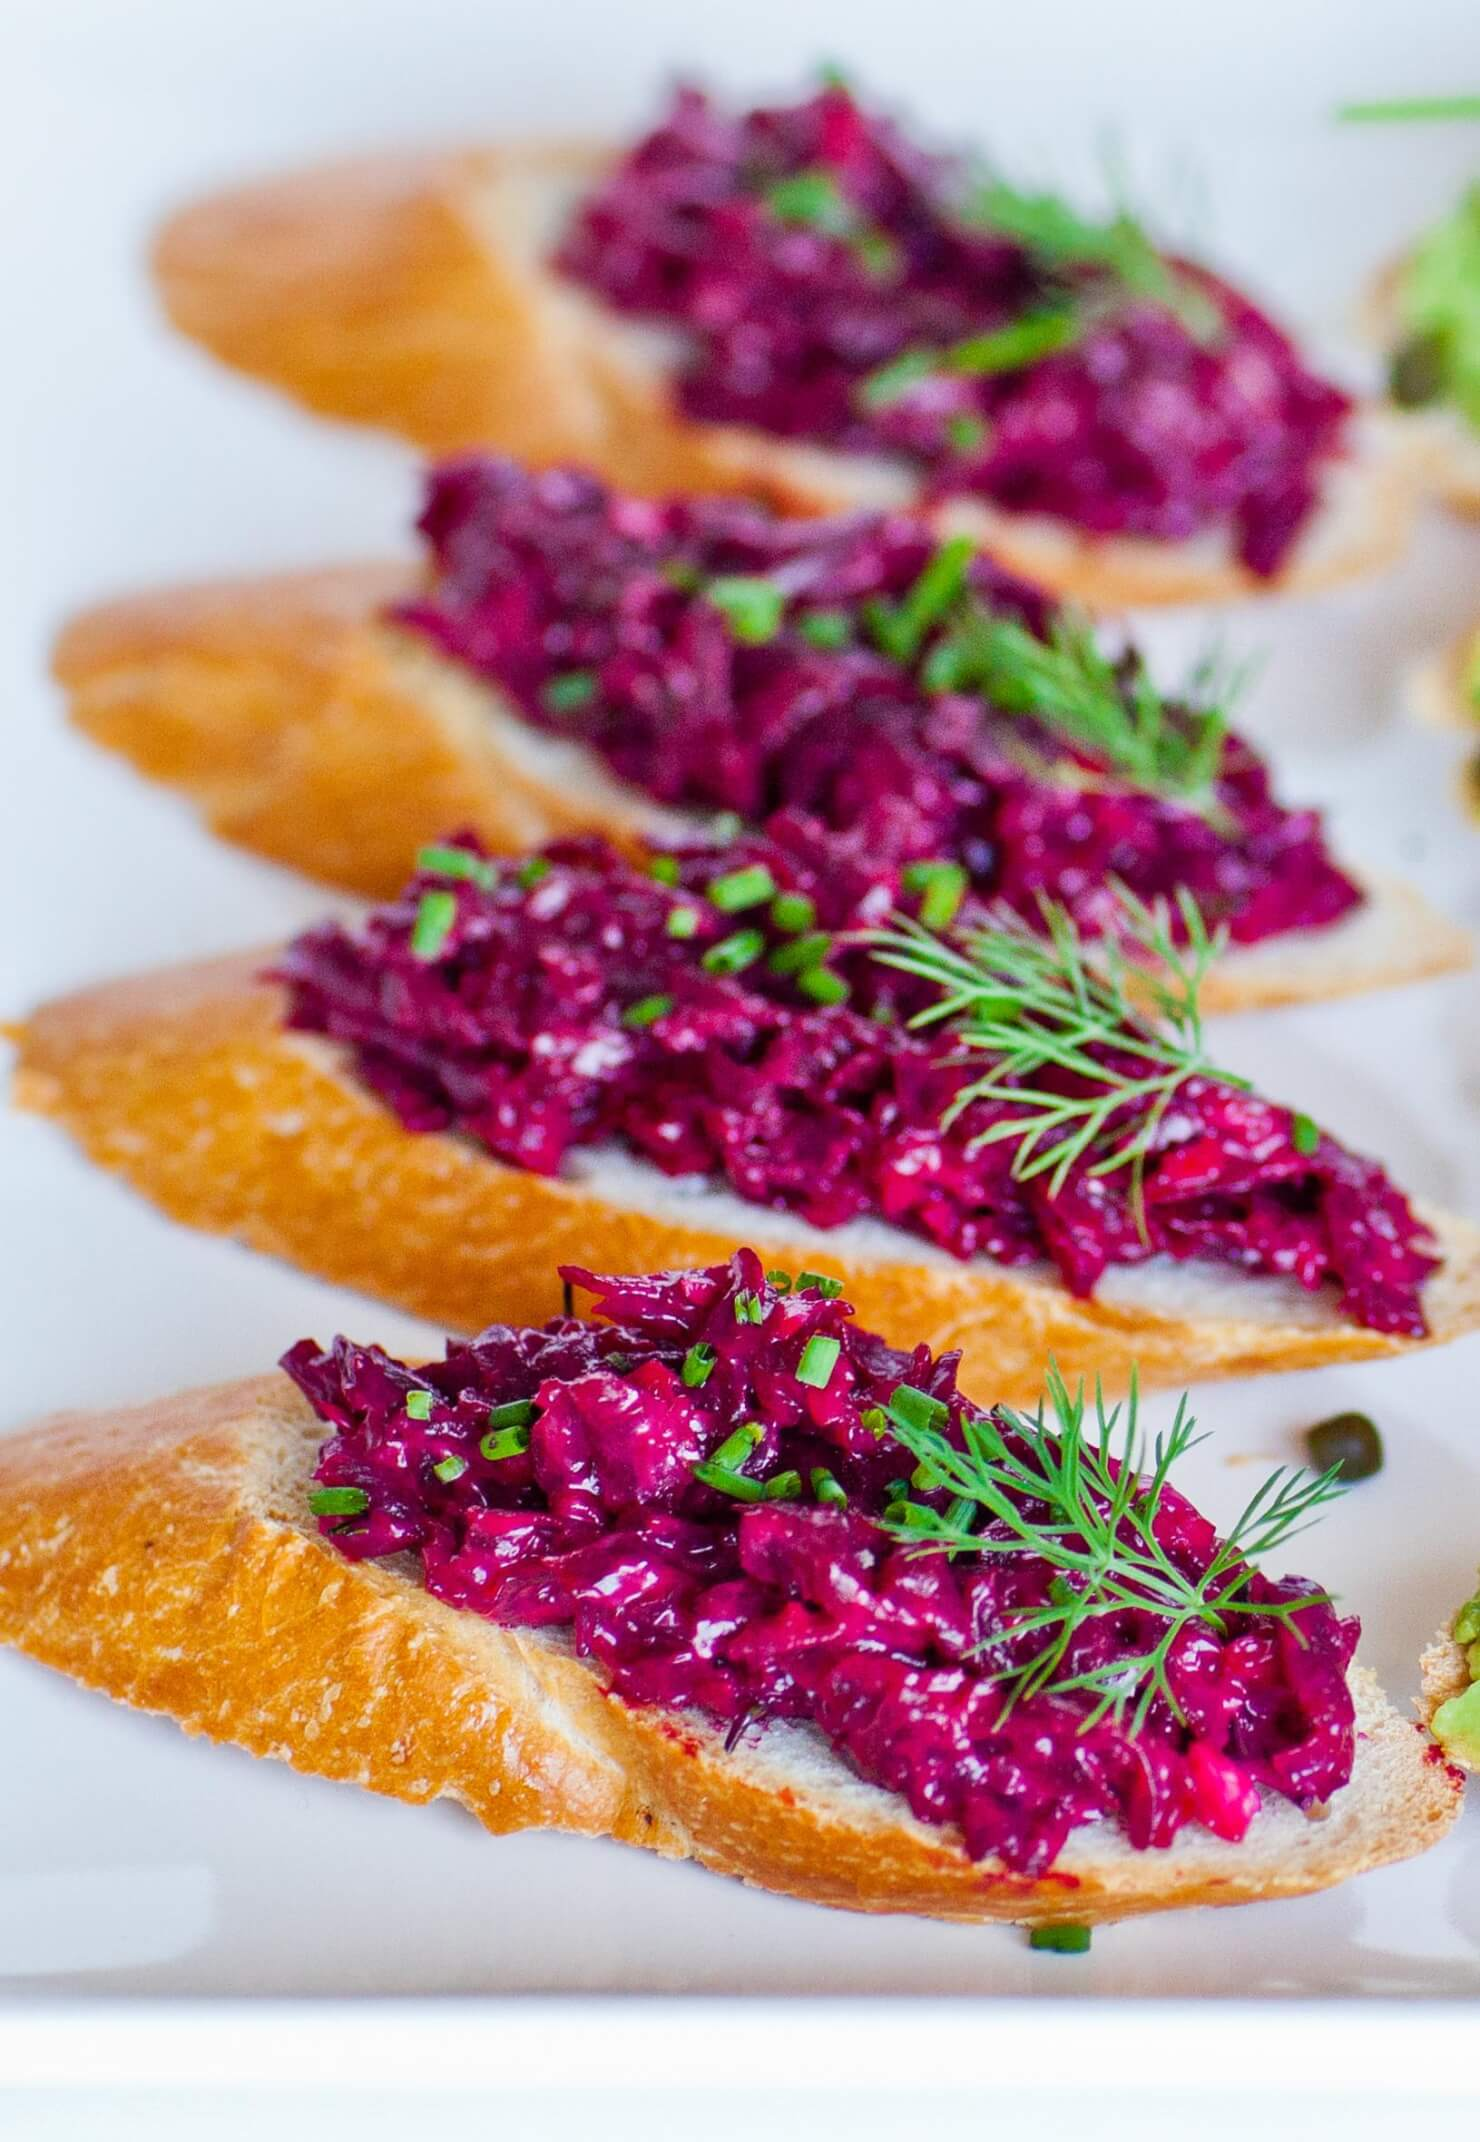 Beet Spread on Toast